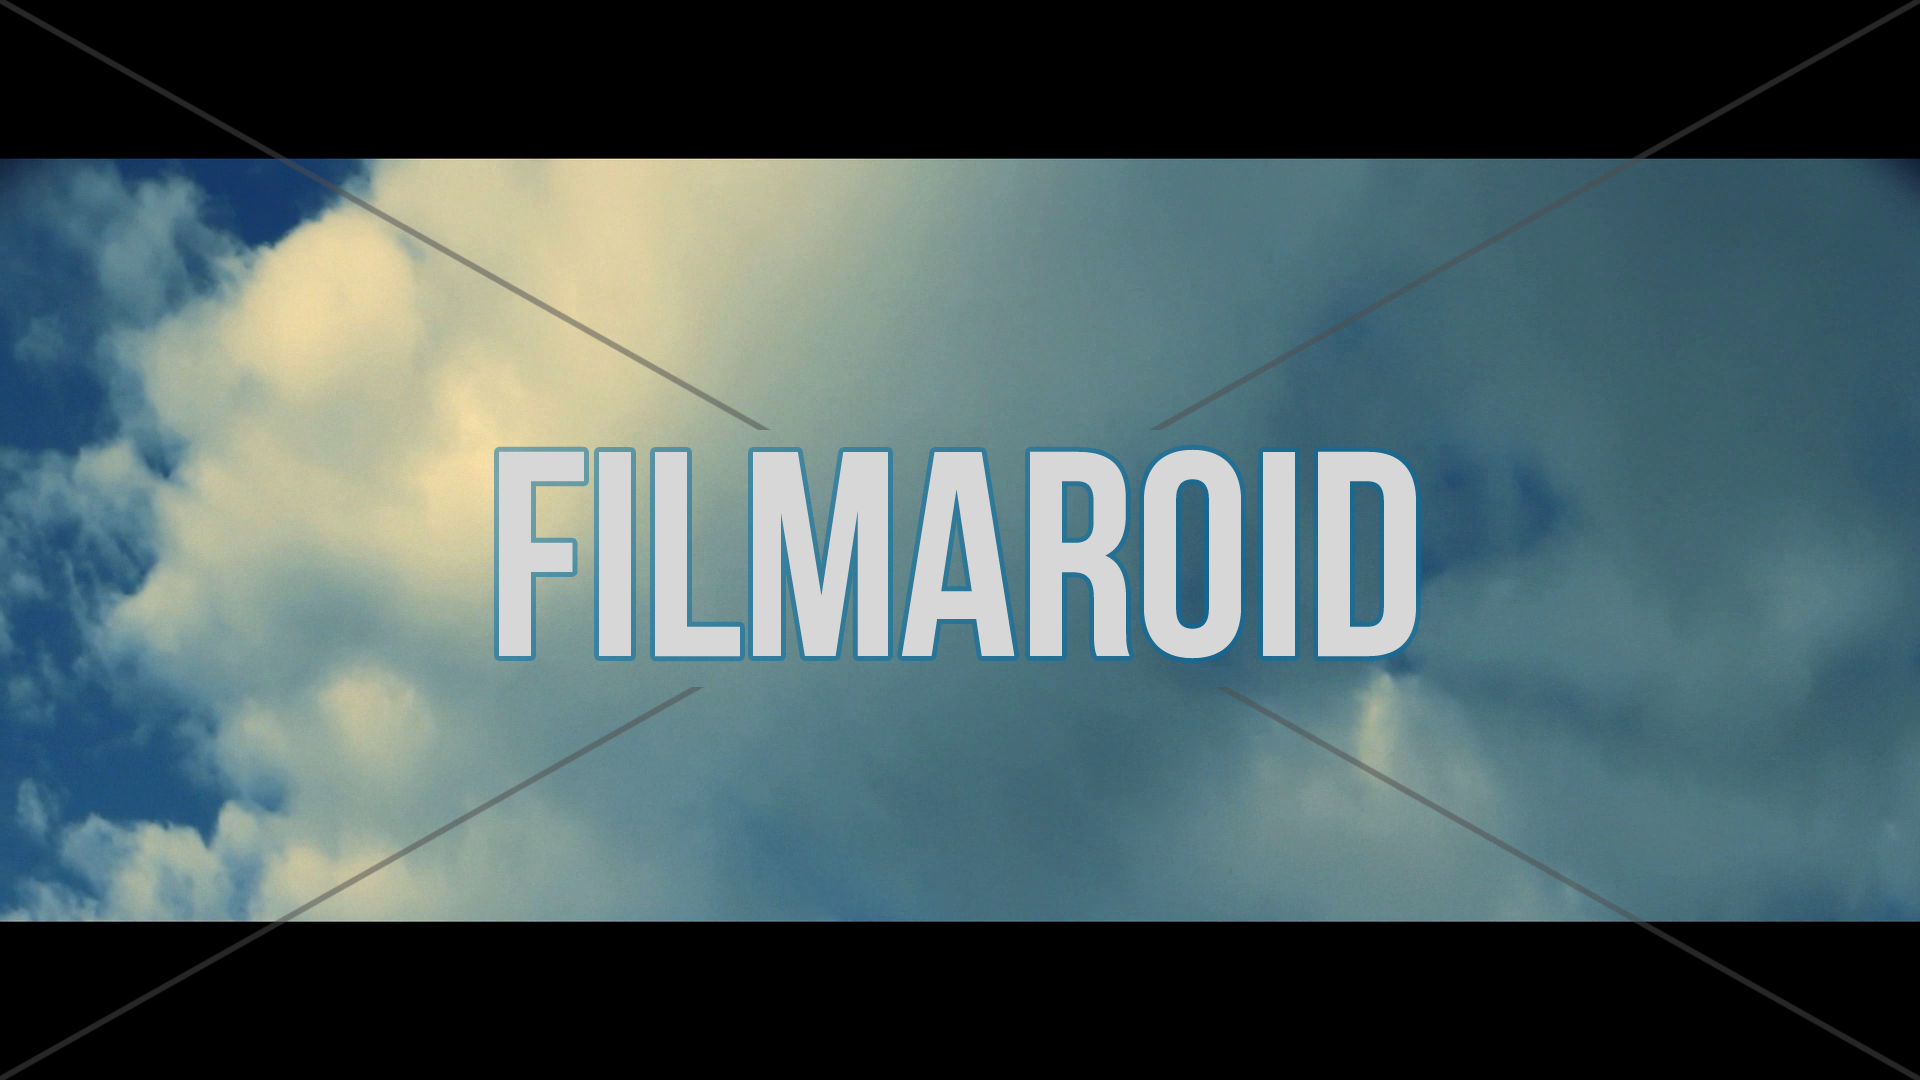 Anamorphic tilt up across dramatic blue sky with large and heavy white cloud - A collection of stock footage for backgrounds